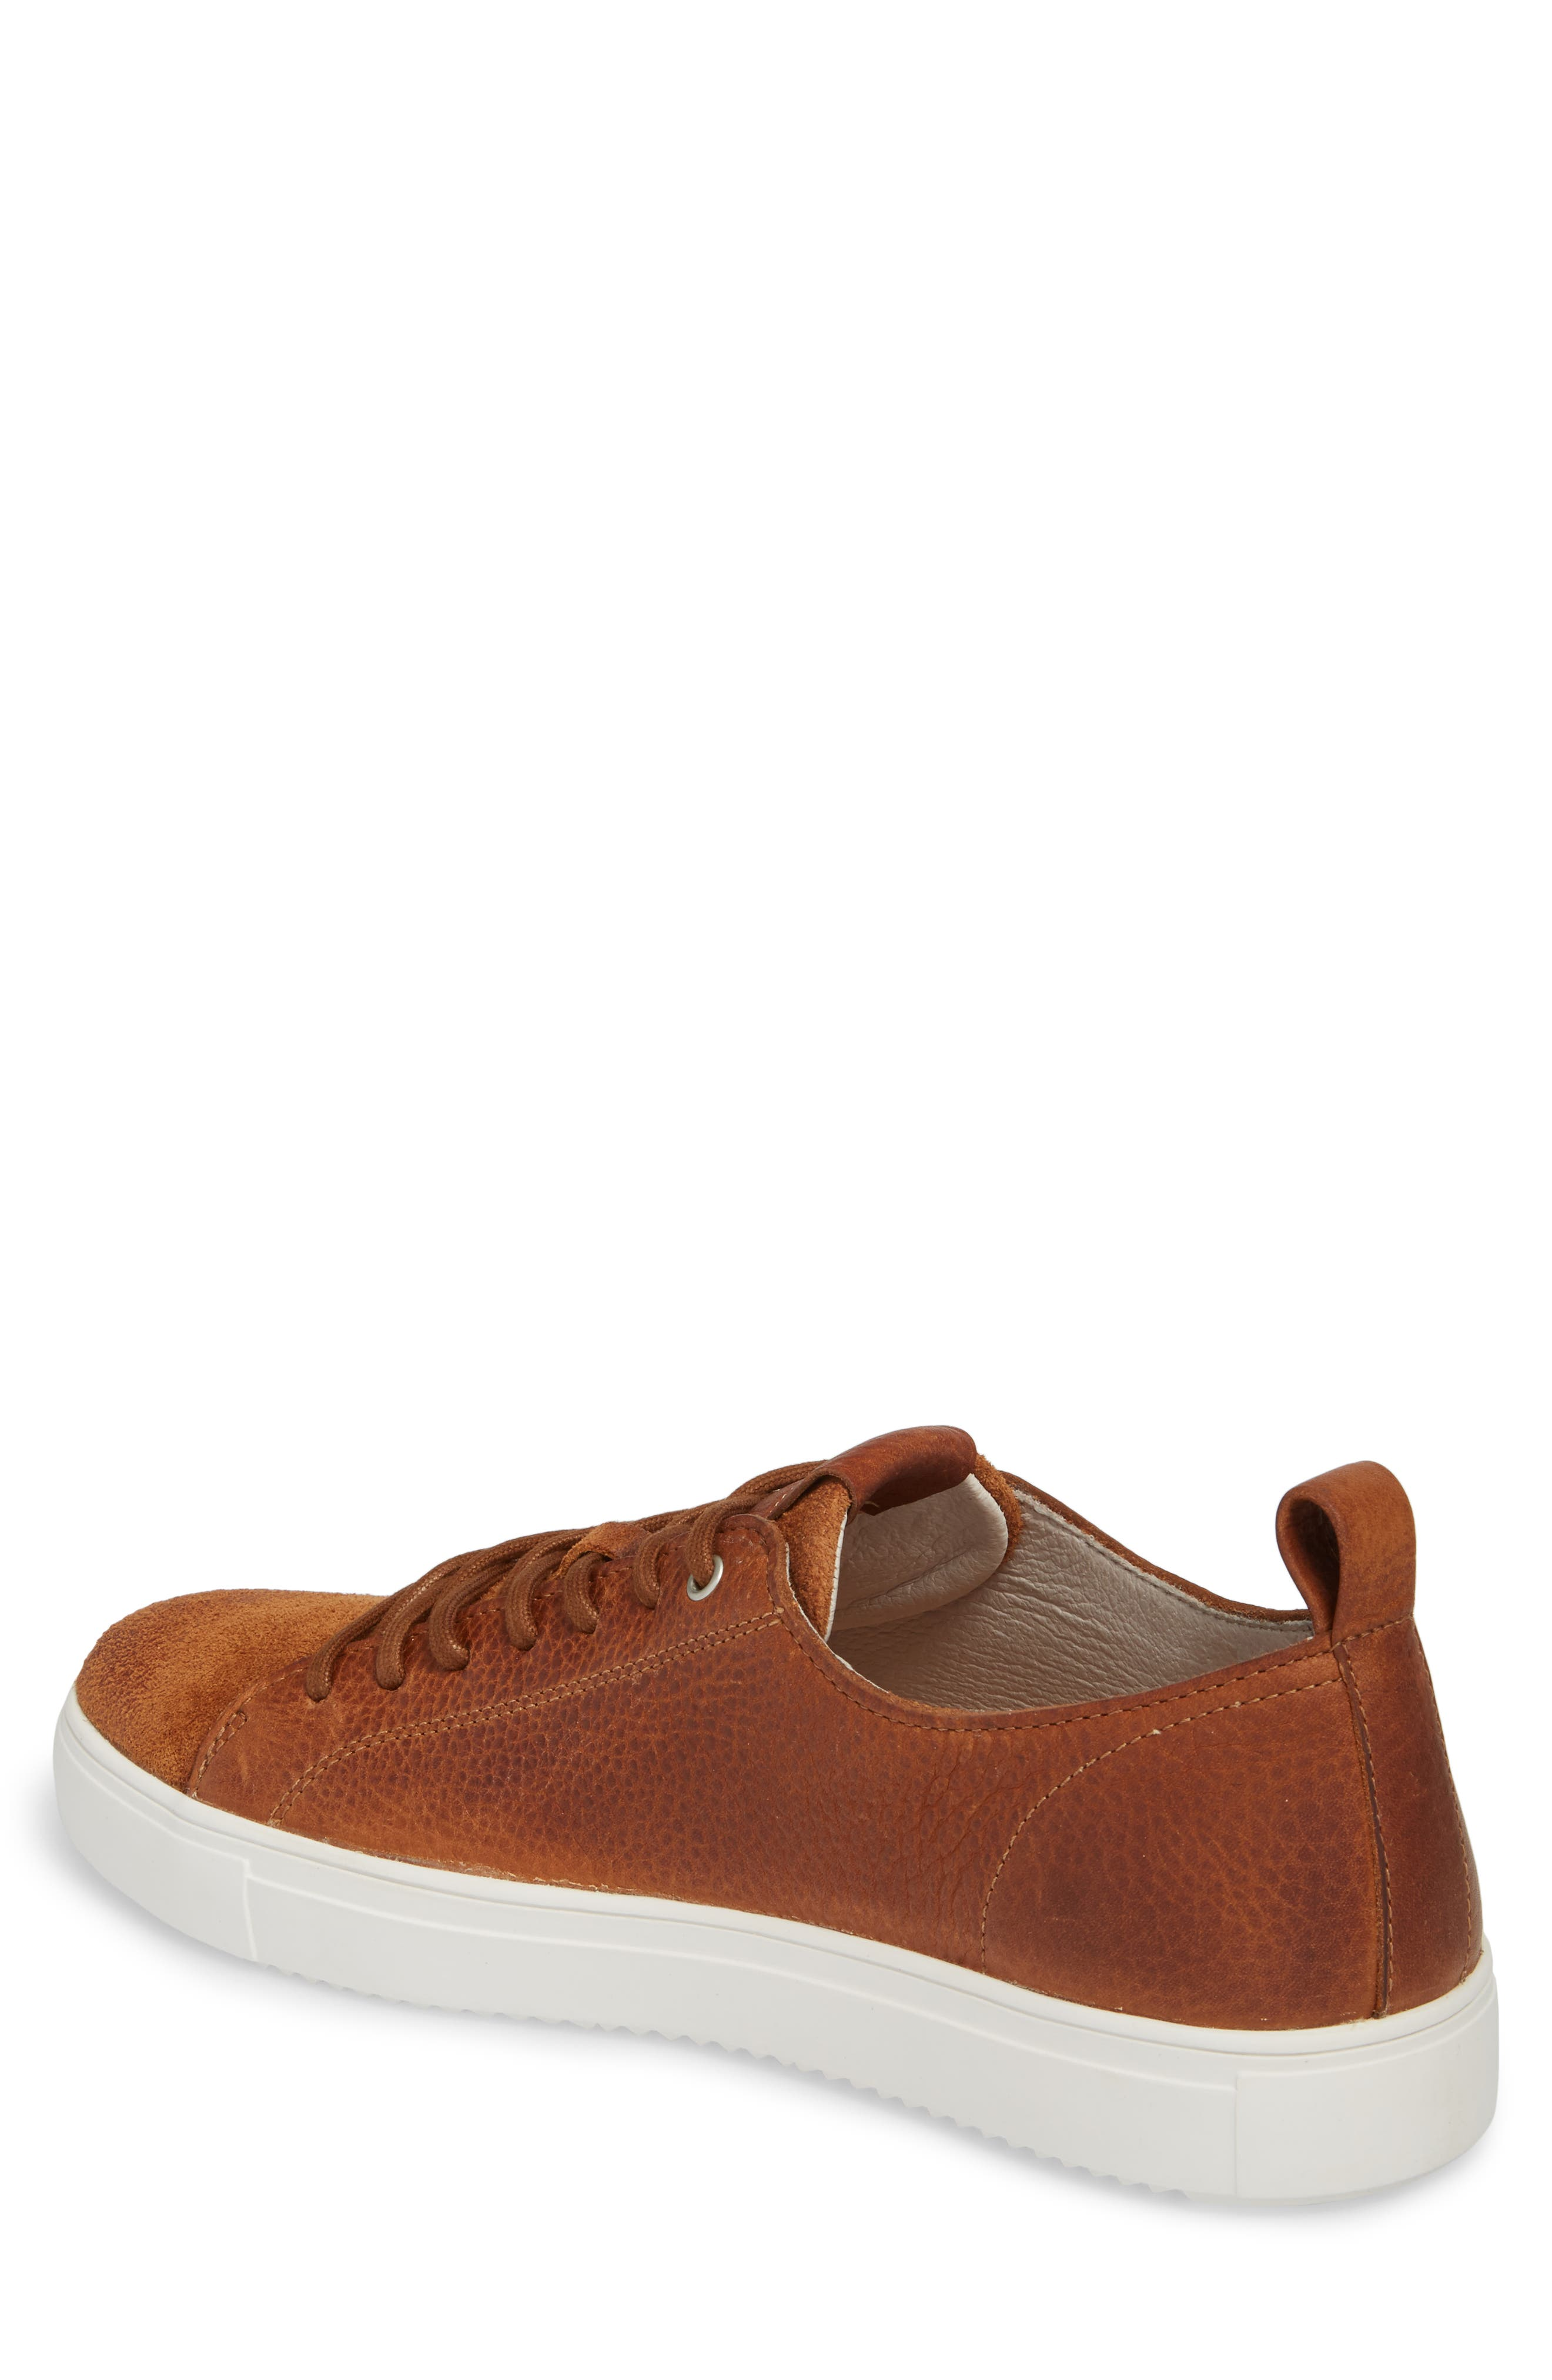 PM46 Low Top Sneaker,                             Alternate thumbnail 2, color,                             Cuoio Leather